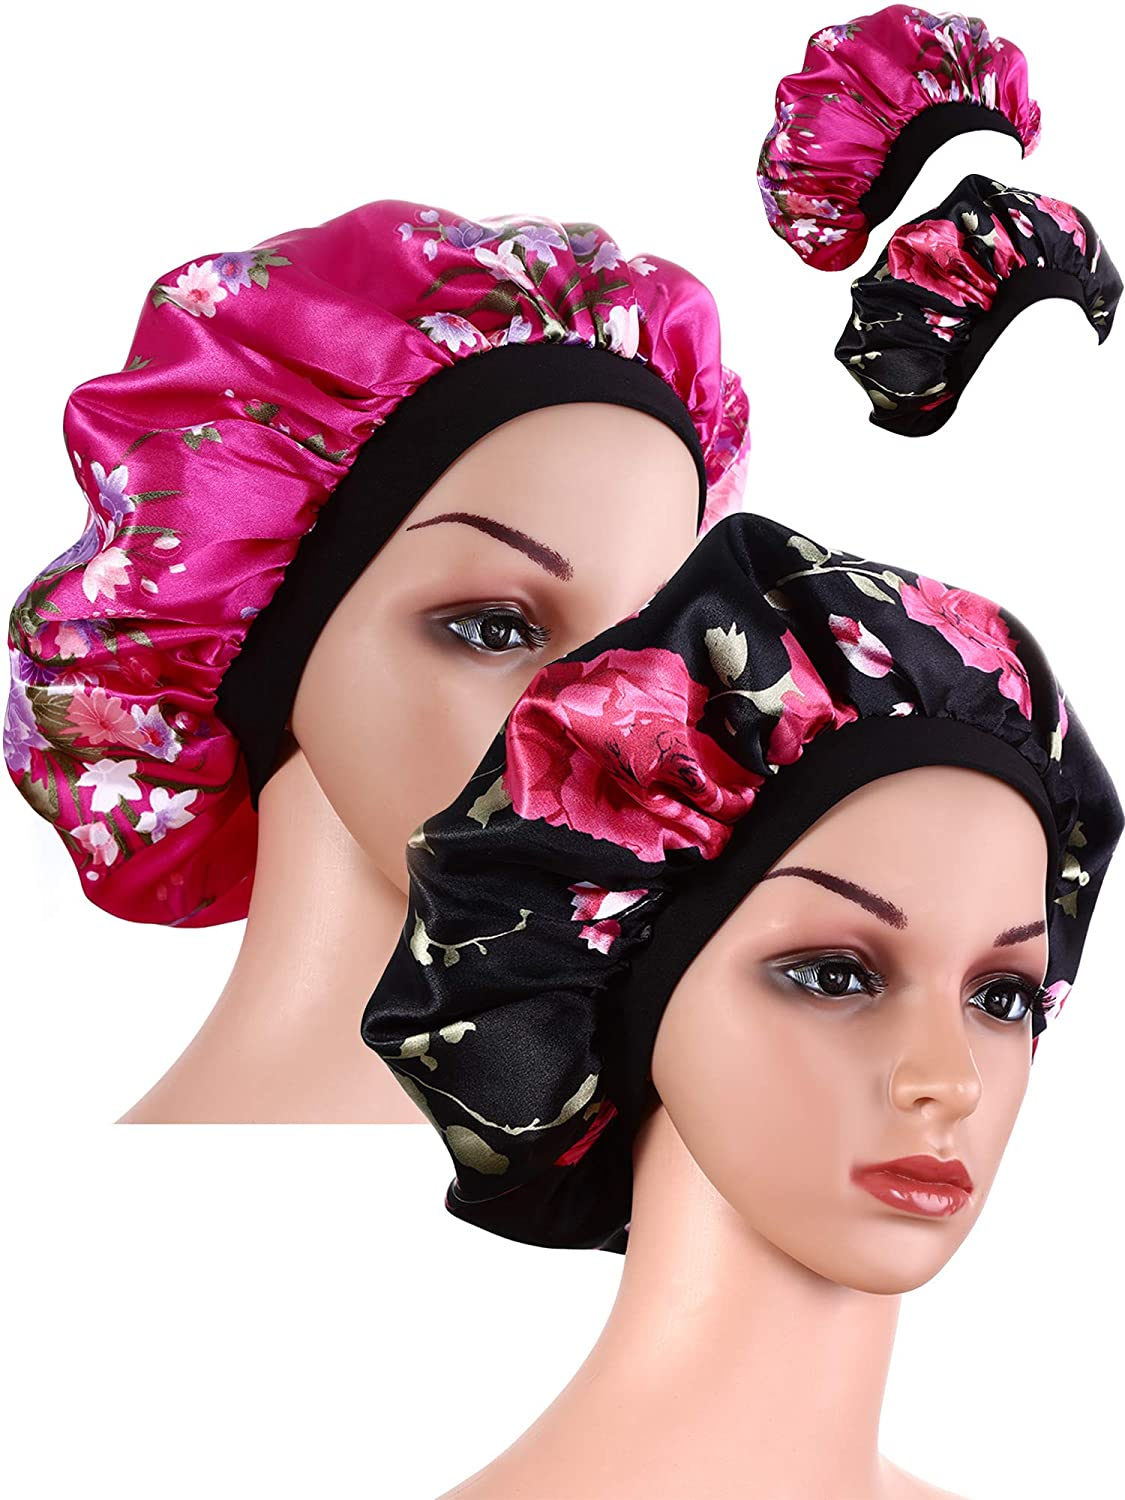 2 Pieces Wide Band Satin Cap Sleep Bonnet Soft Night Sleep Hat Women Girls (Black and Rose red) Blulu